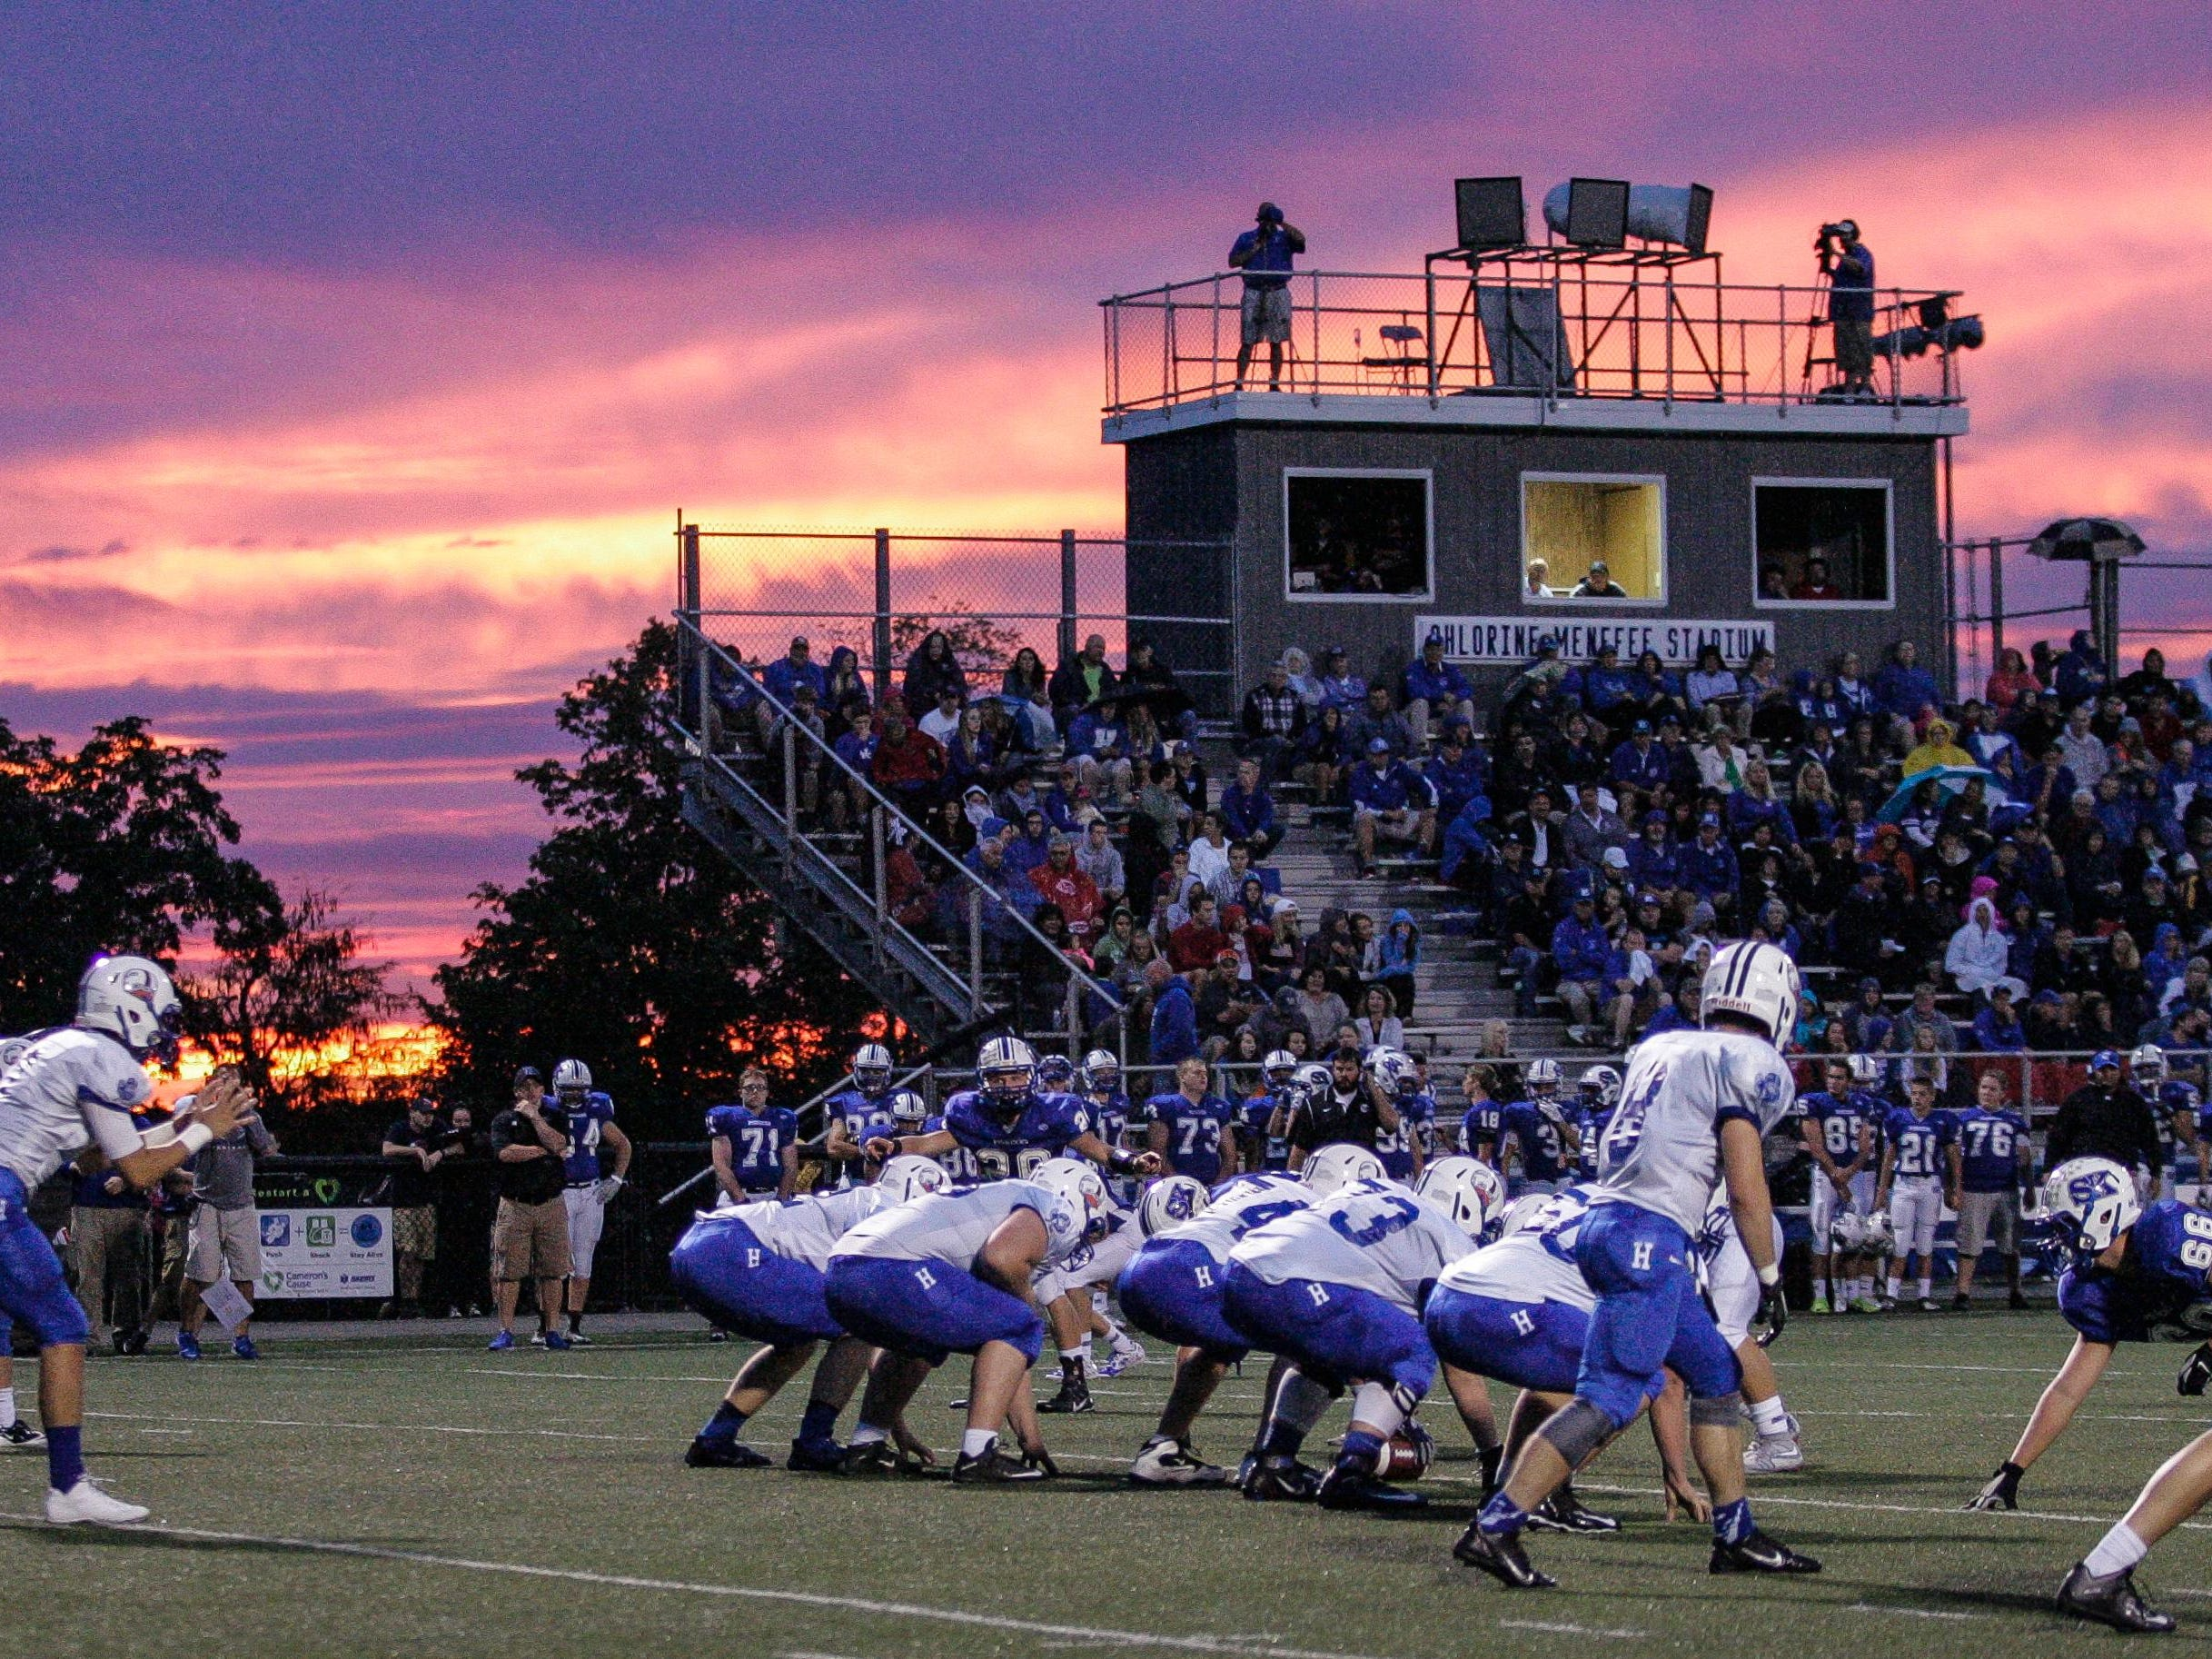 Highlands quarterback Austin Hergott waits for a snap in front the sunset during the game at Simon Kenton Friday.